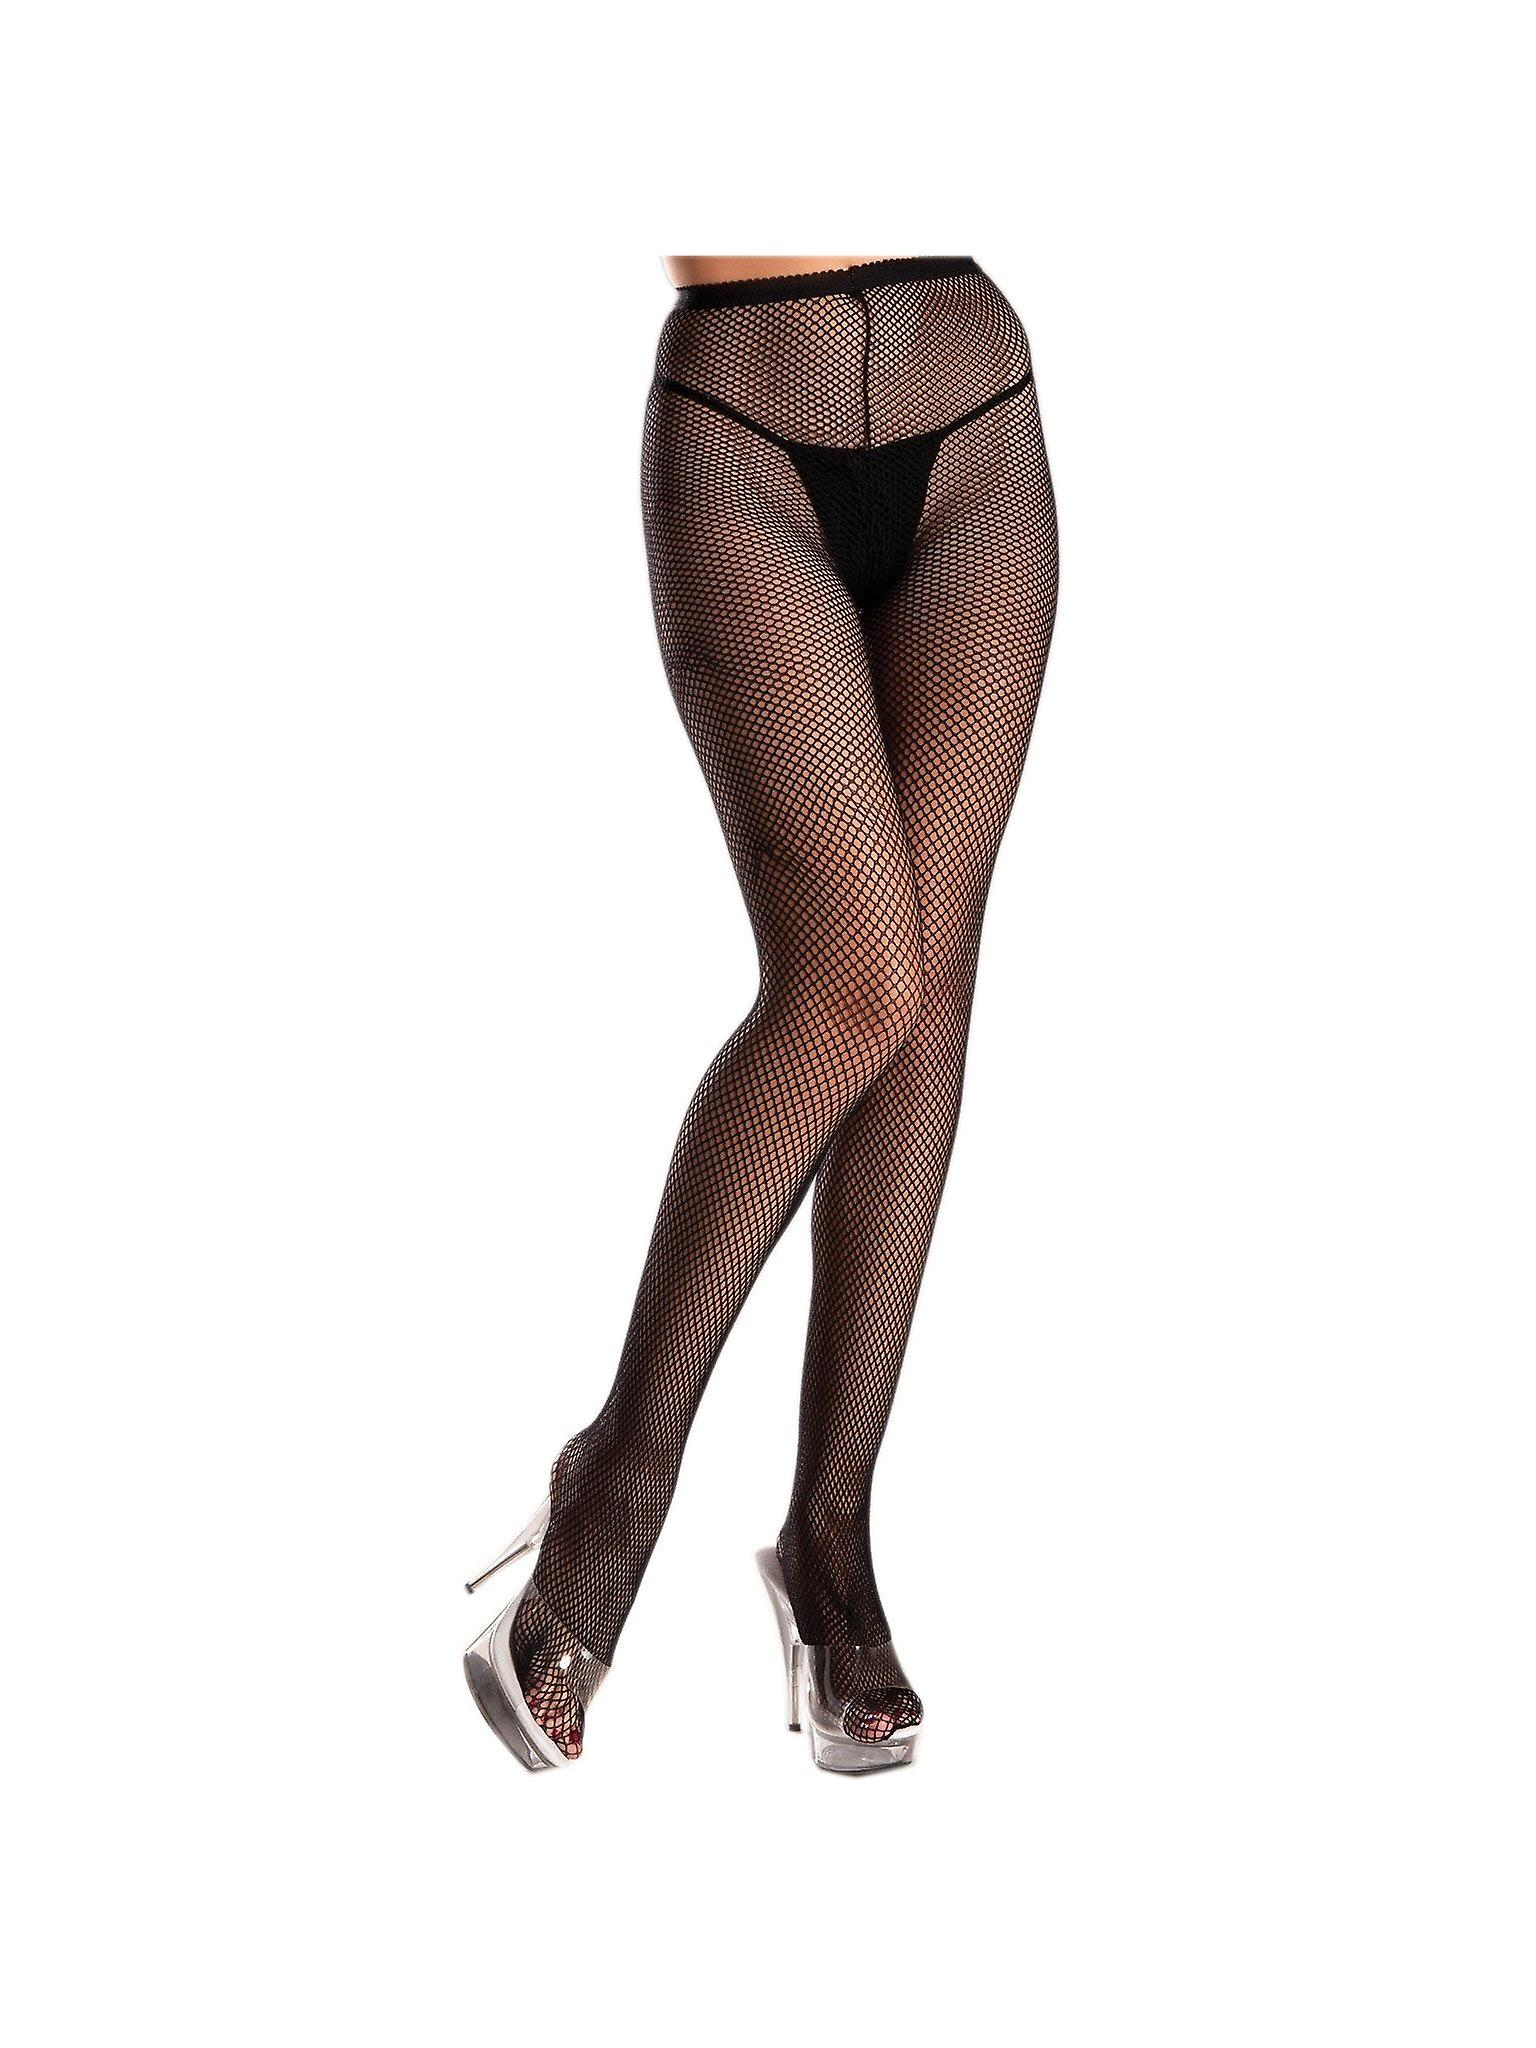 b68c2987b Be Wicked BW529 Fishnet Pantyhose Also in plus size